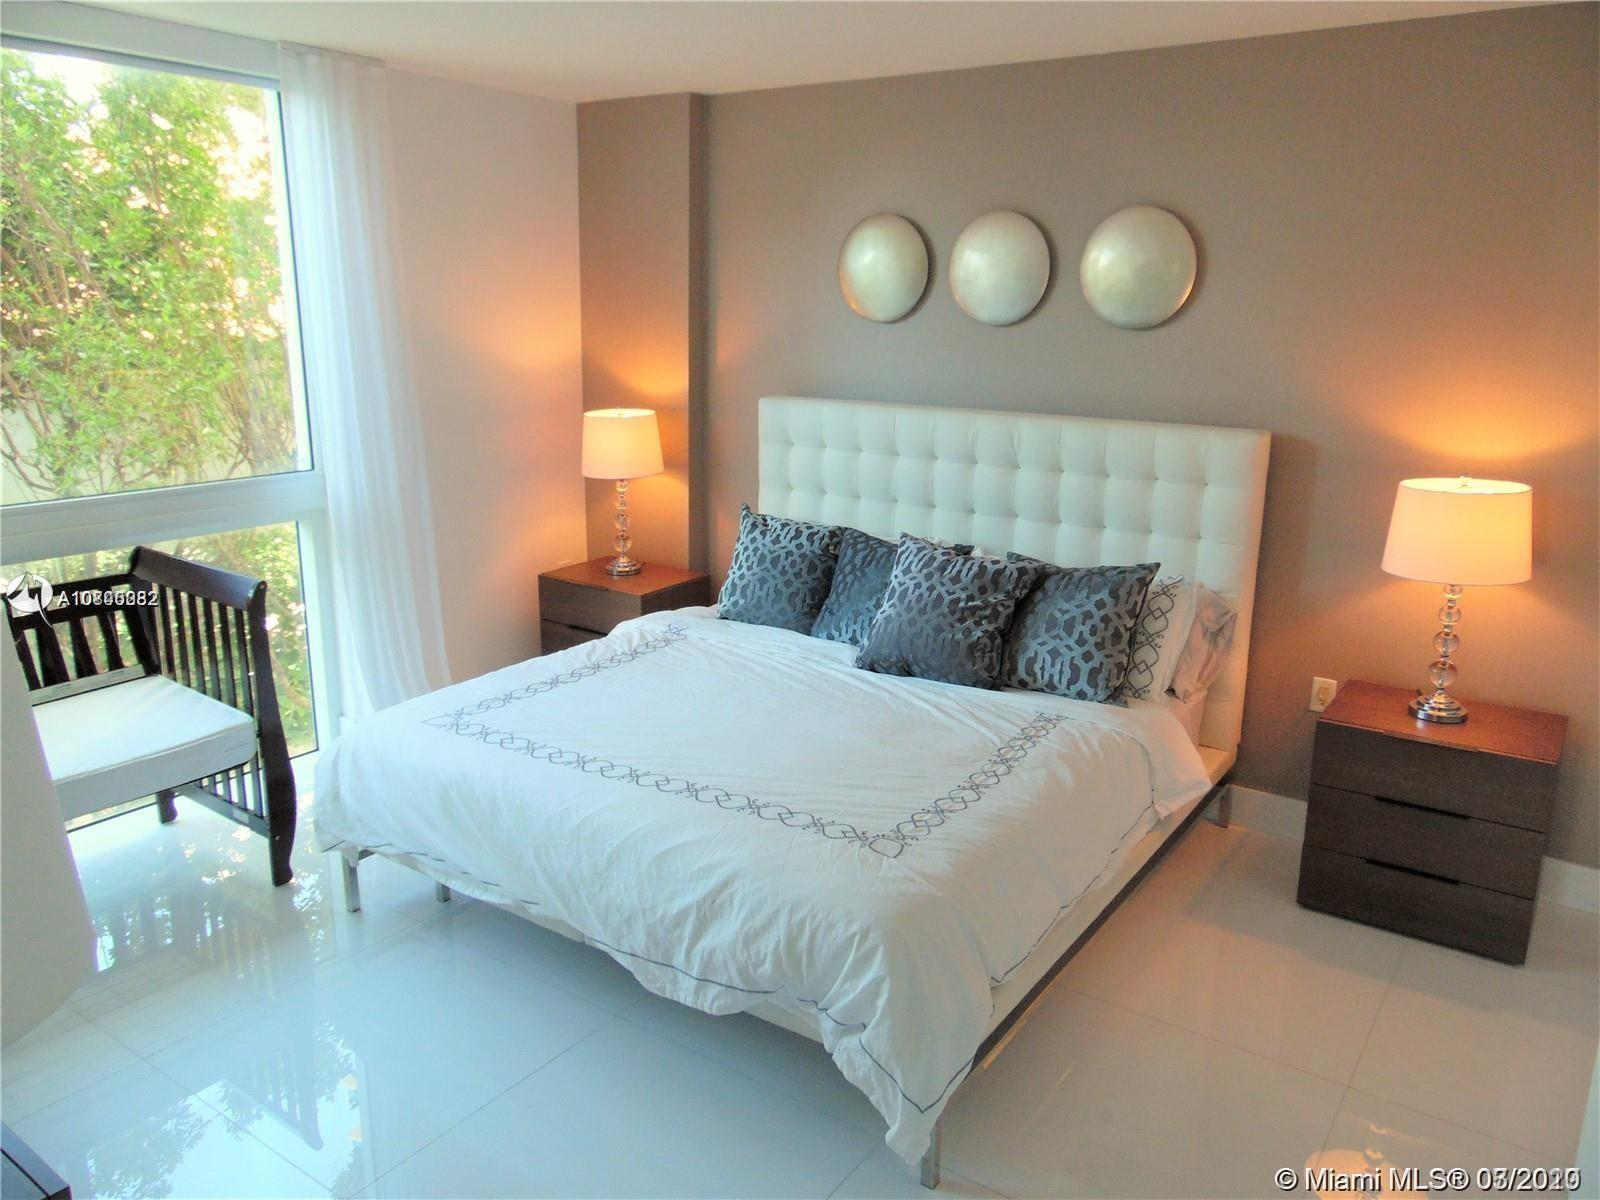 1447 Sq Ft. Gorgeous 3 Bed located in tower 2 of St. Tropez. Building offers resort-style amenities